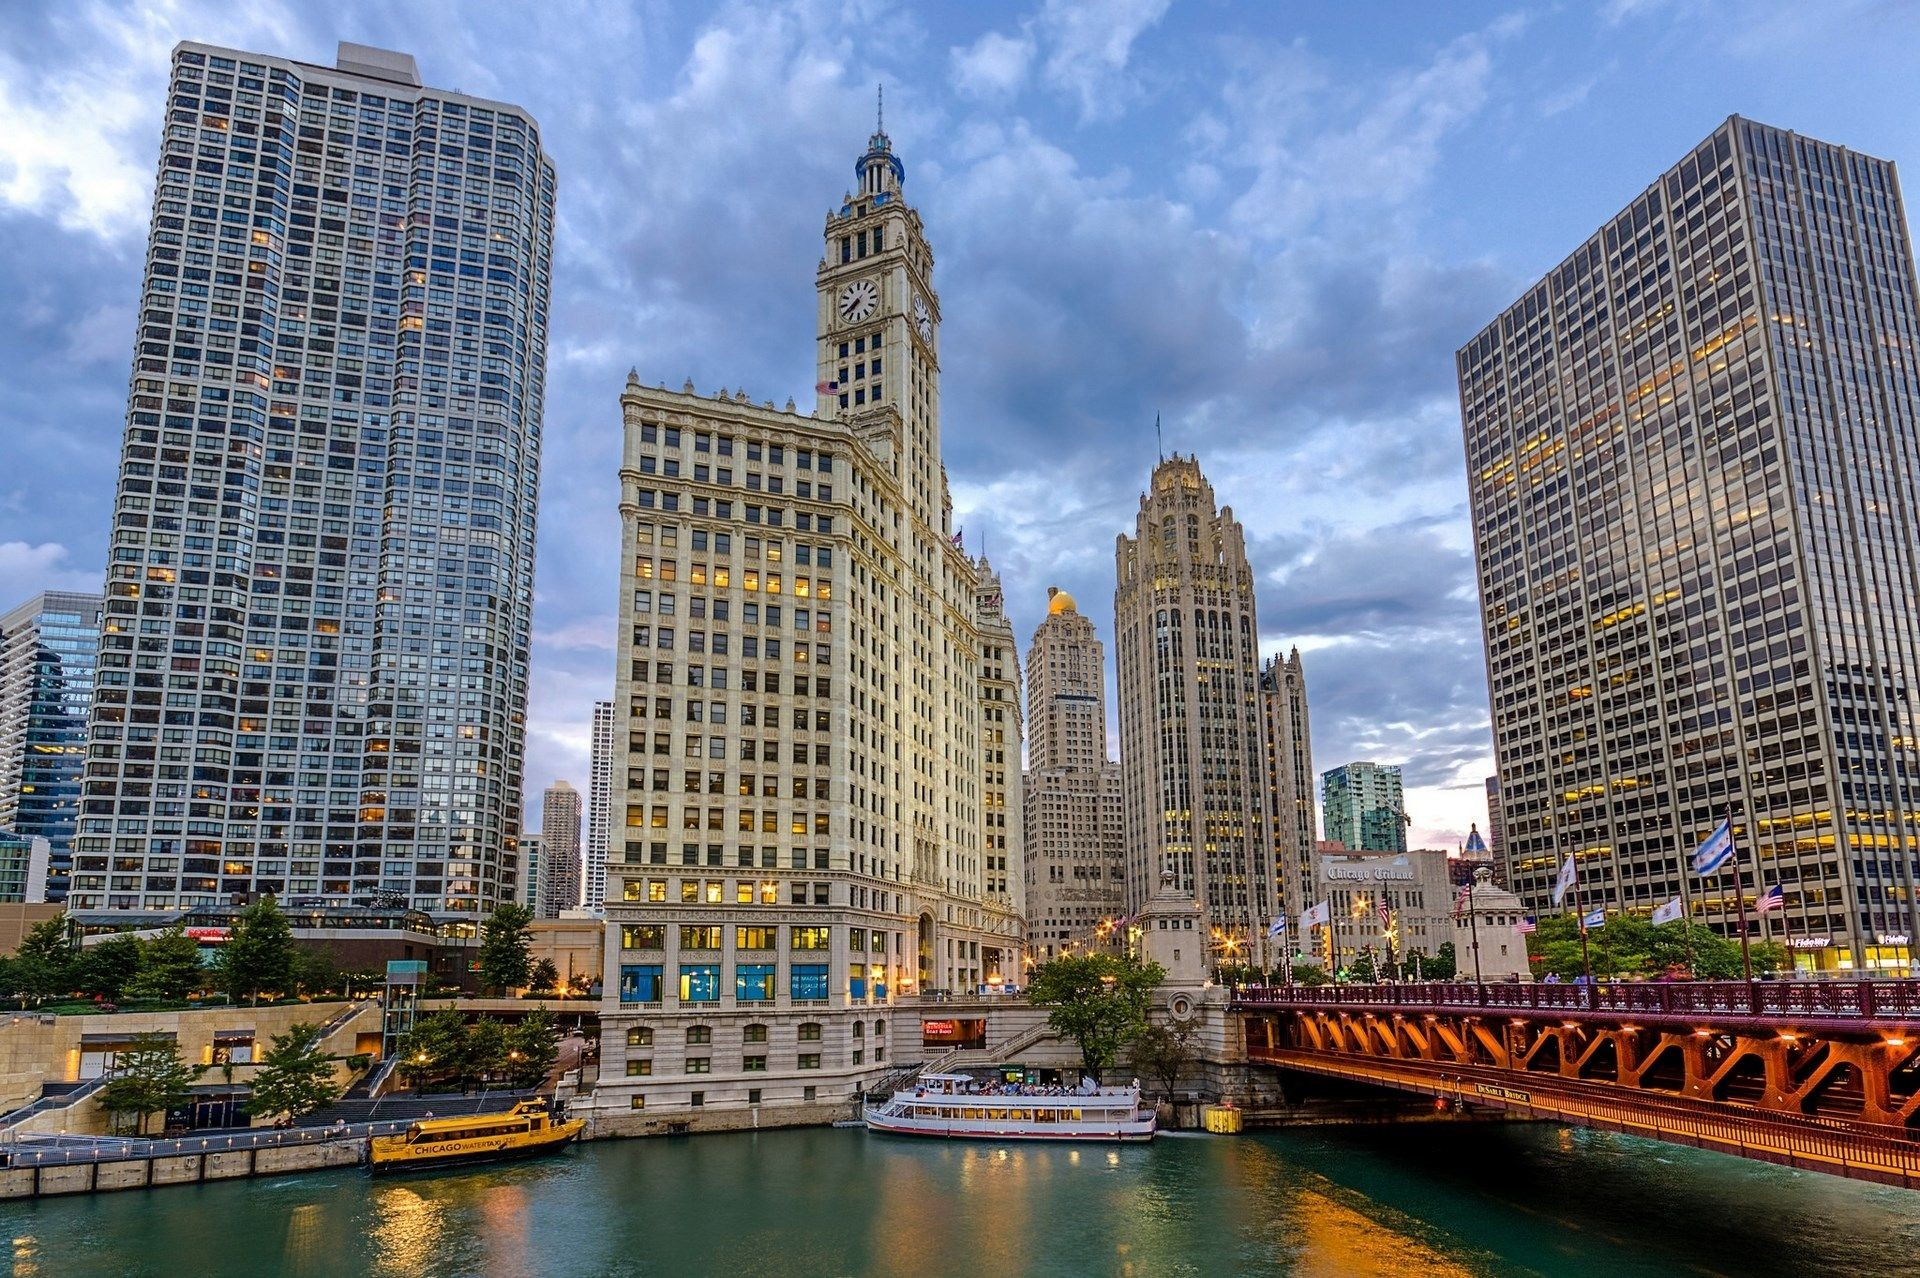 ATAT in Chicago iPhone Wallpaper HD Free Download